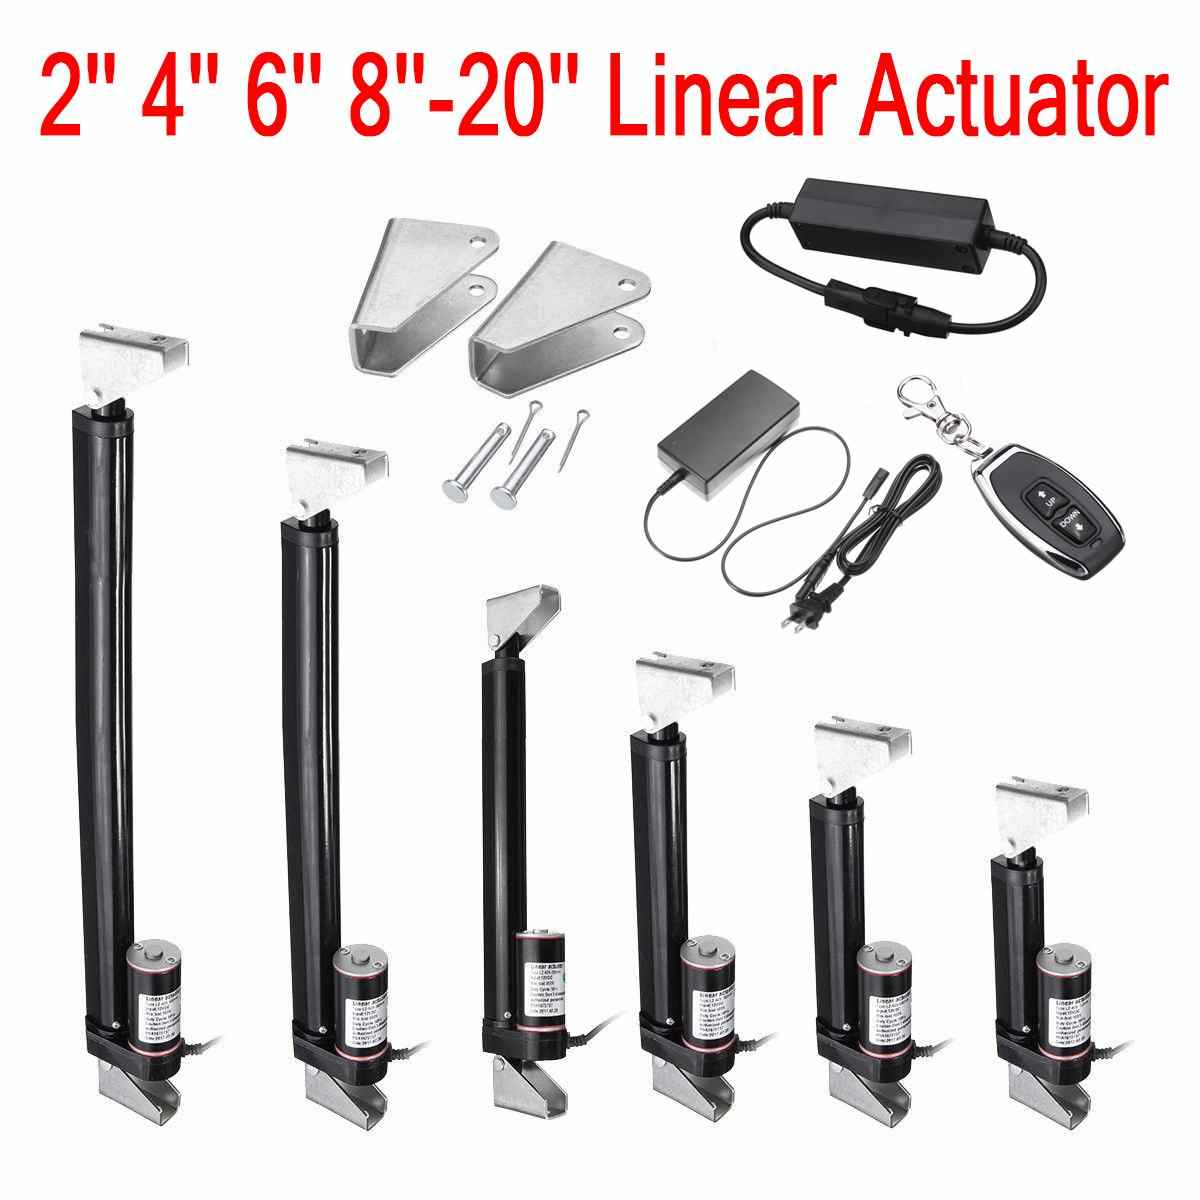 2-16 Inch 900N 225Lbs Black Linear Actuator Stroke Max Lift Output 12V DC 7-10mm/s Electric Linear Actuator Motion Controller